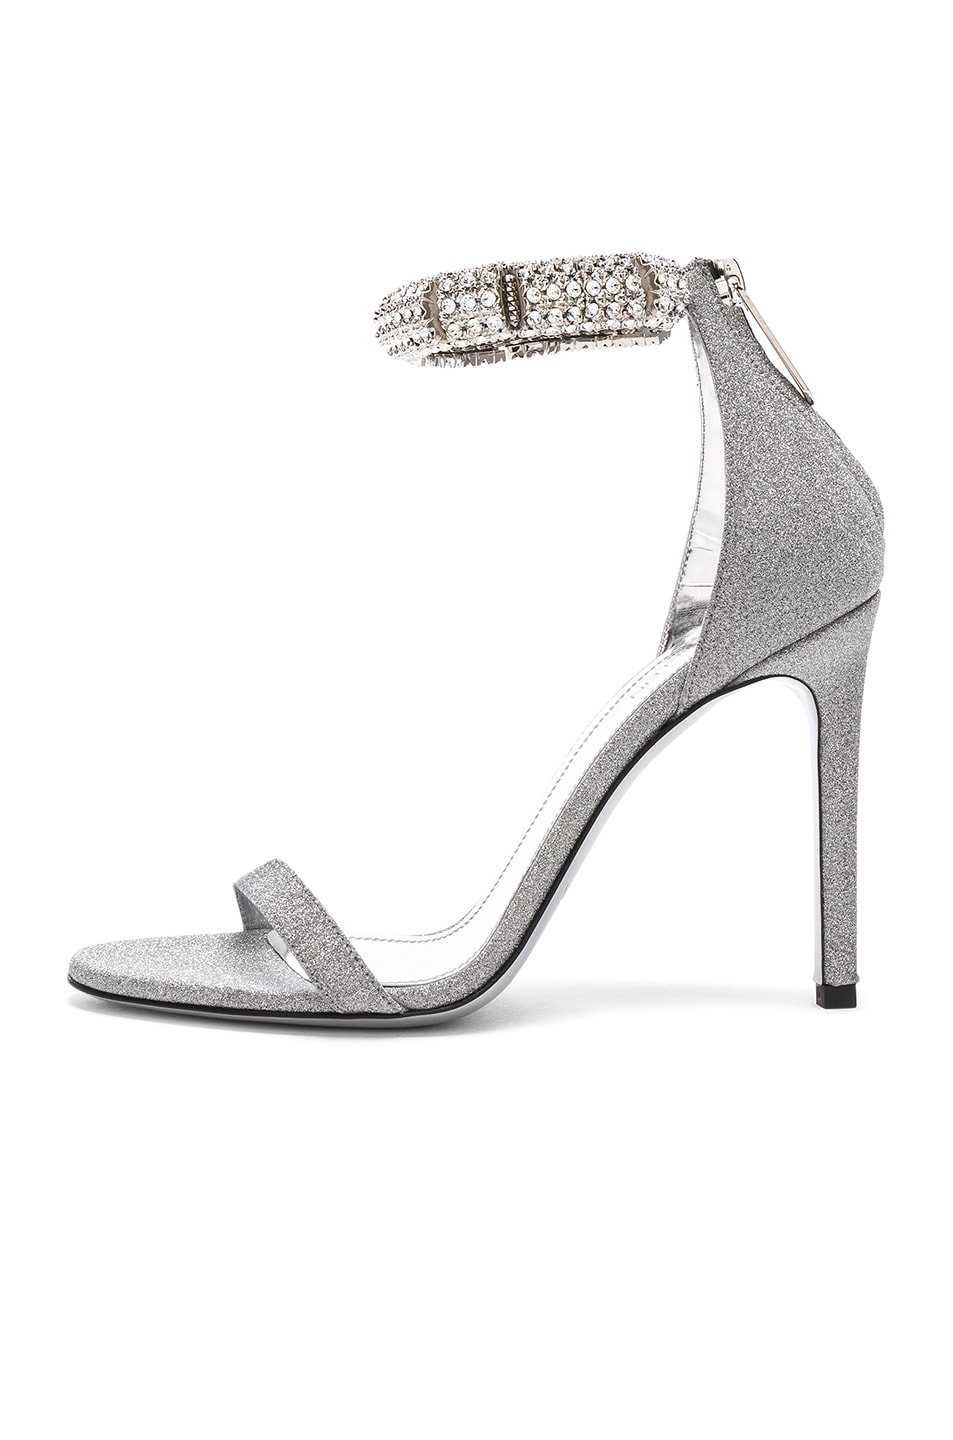 Image 7 of CALVIN KLEIN 205W39NYC Camelle Diamond & Swarovski Embellished Sandals in Silver